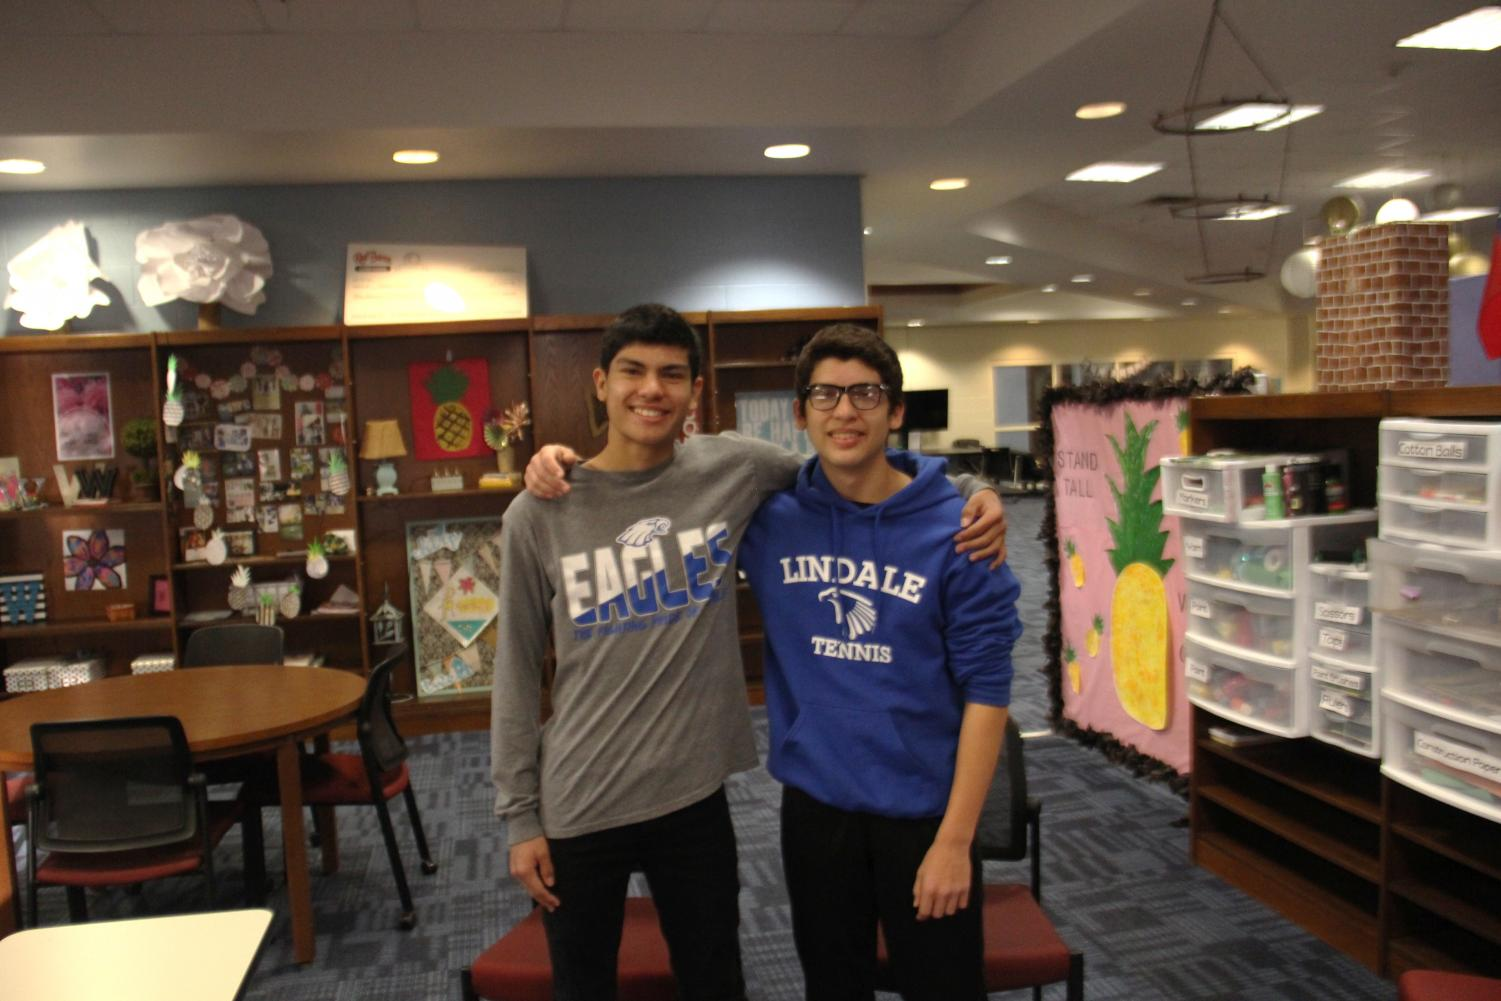 Senior Rick Samaraweera and sophomore Andre Samaraweera pose in the library. The two brothers began attending school at the beginning of last year.